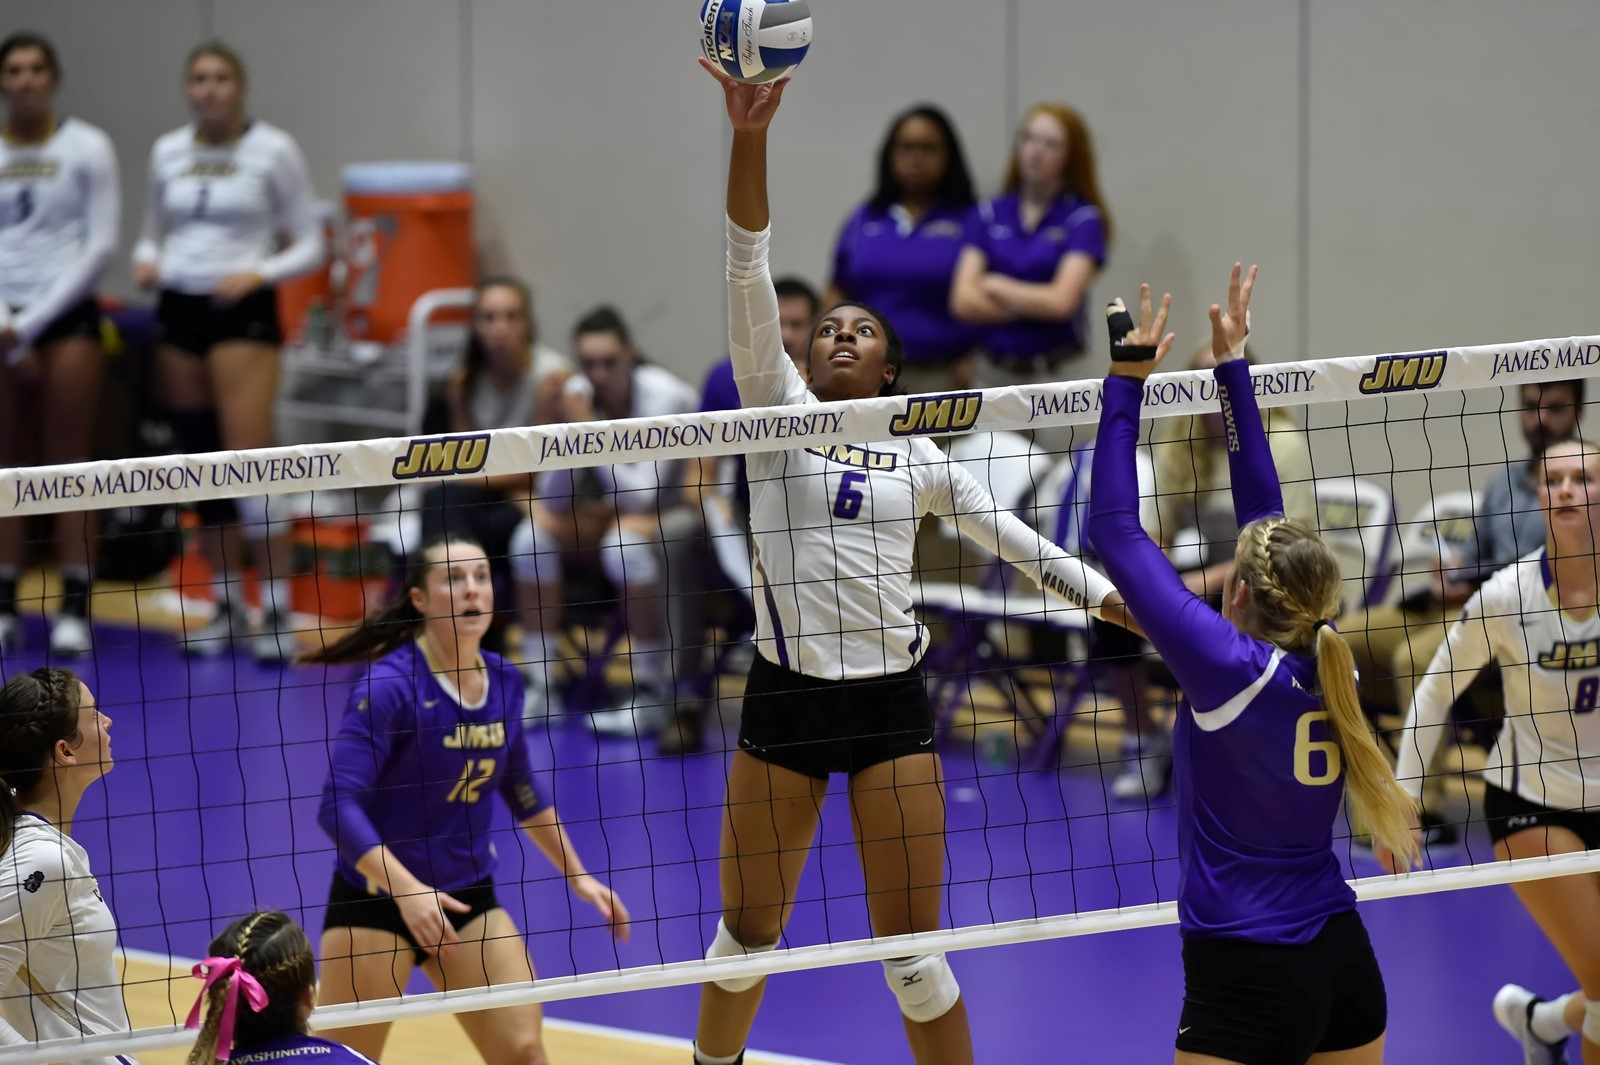 Women's Volleyball: Volleyball Wins JMU Invitational But Falls To #7 Washington